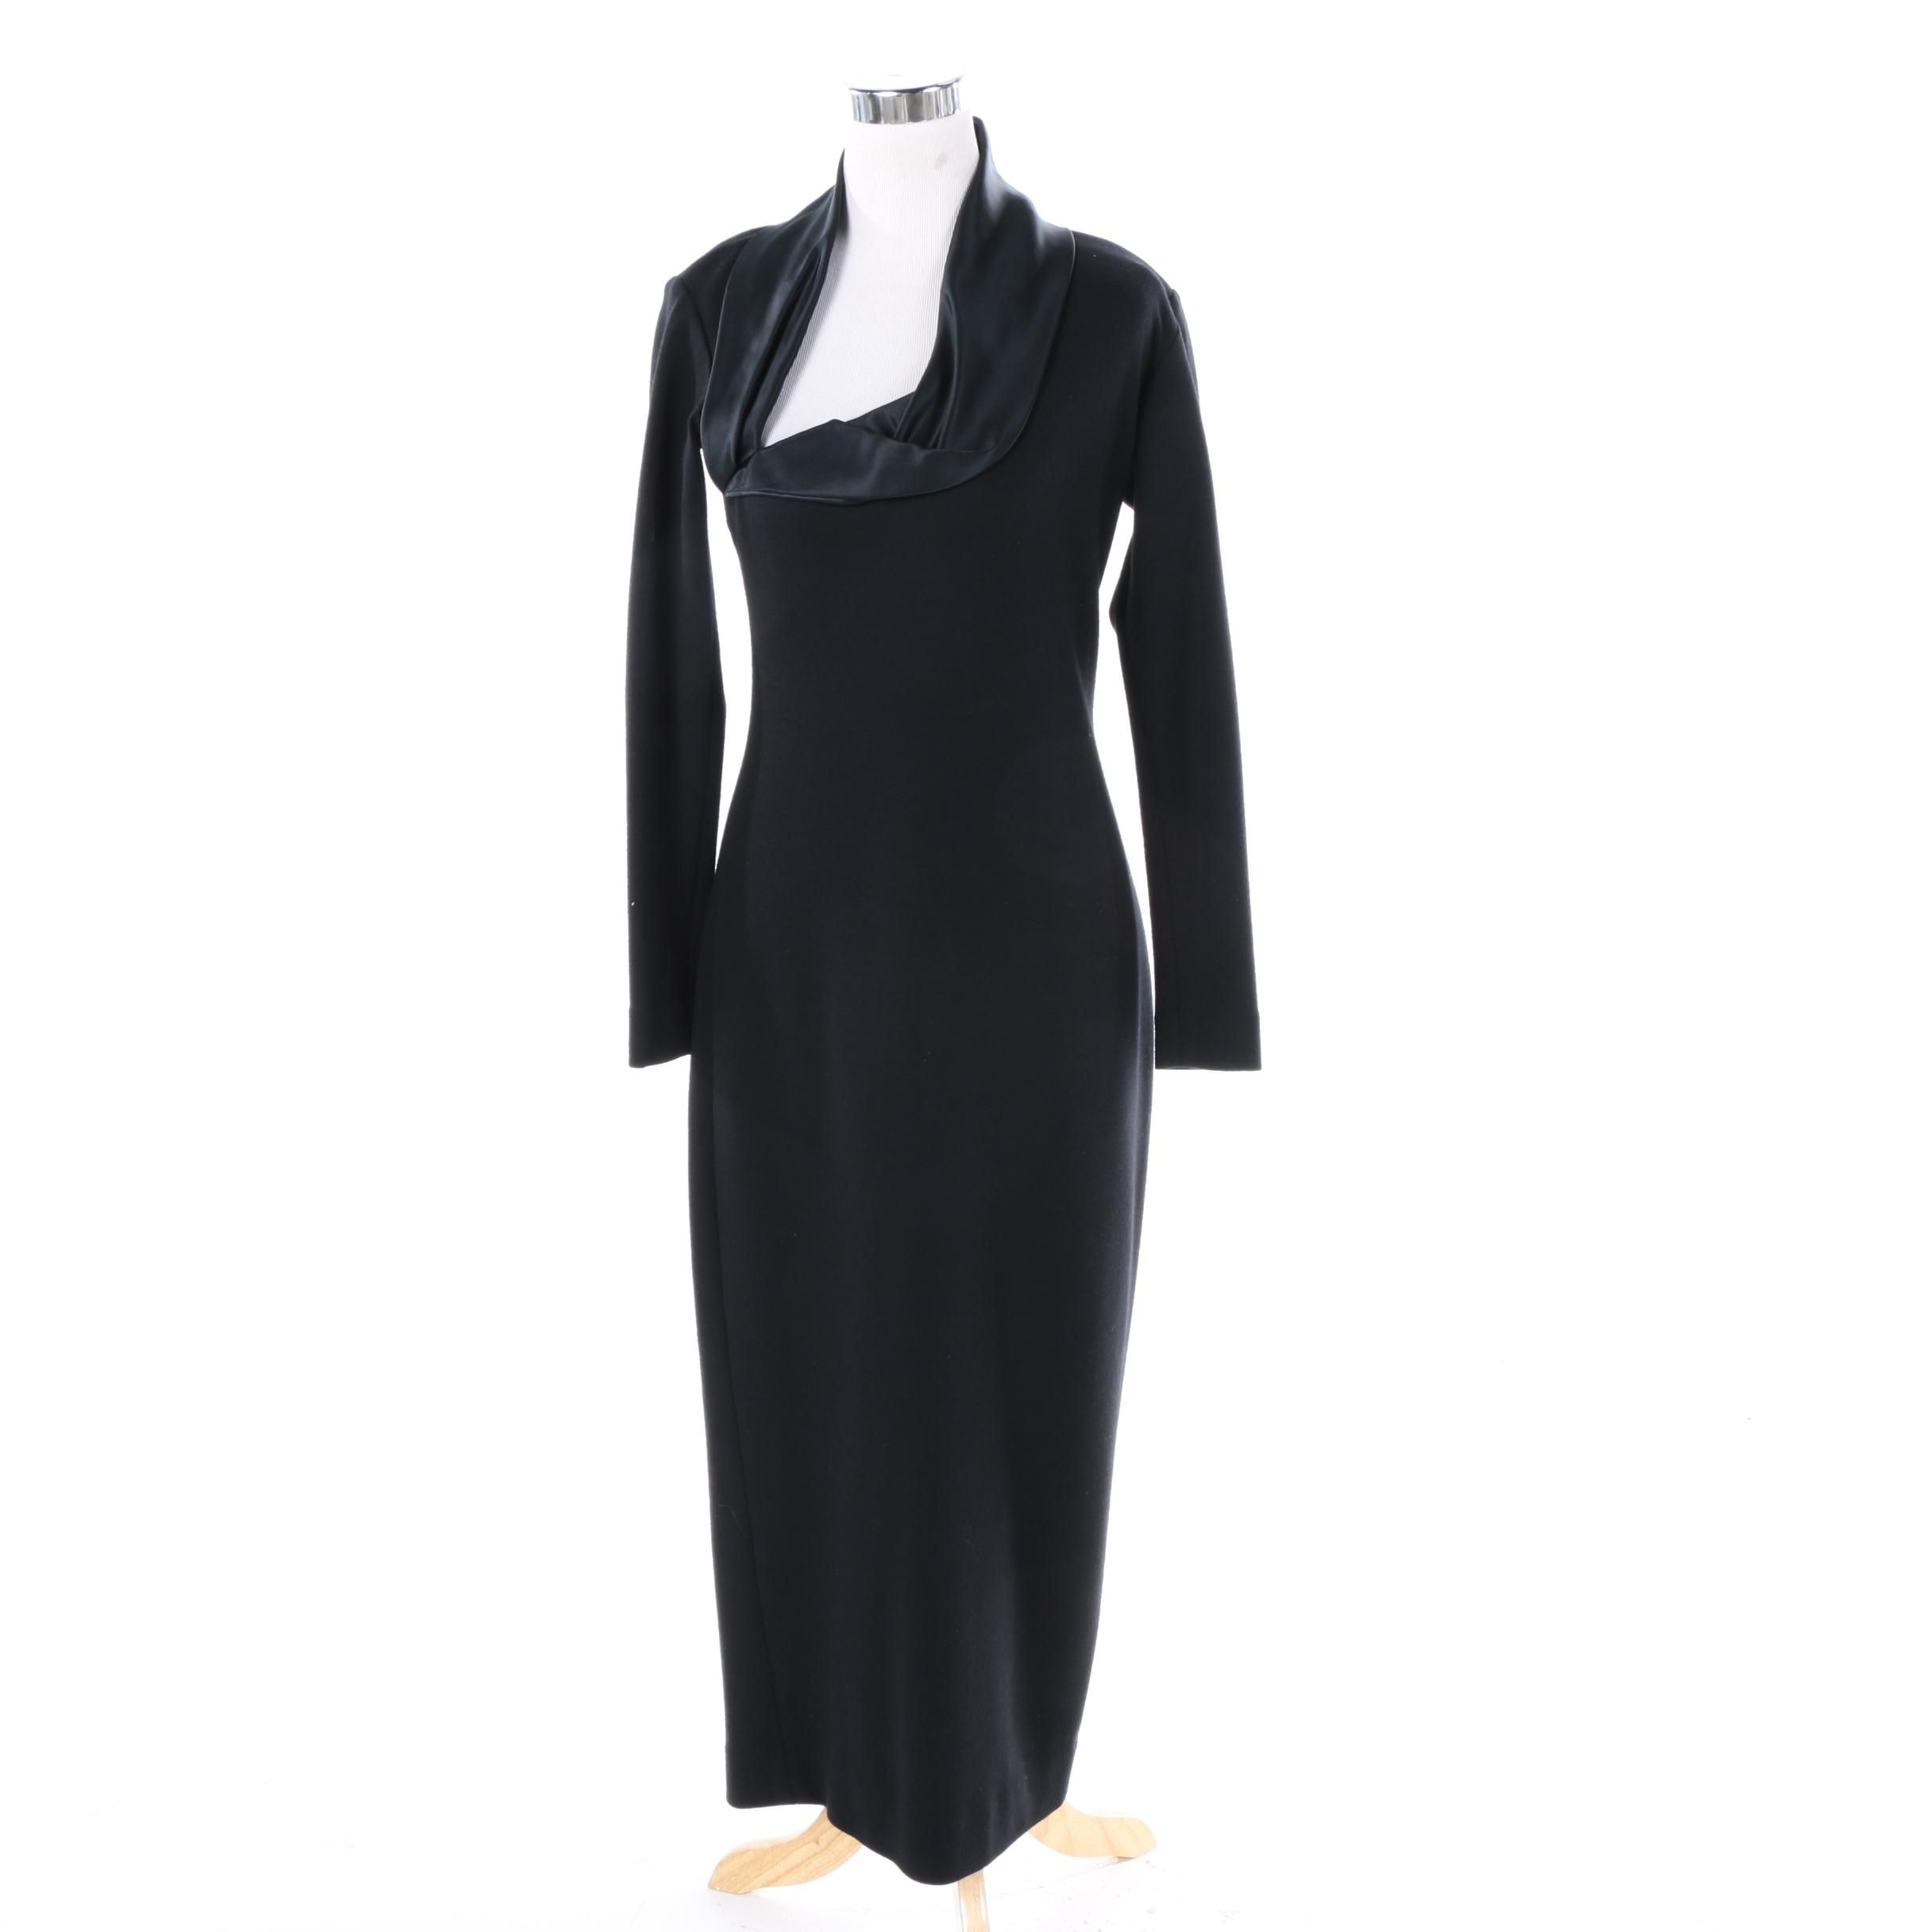 Joseph Abboud Black Knit Dress with Satin Trim